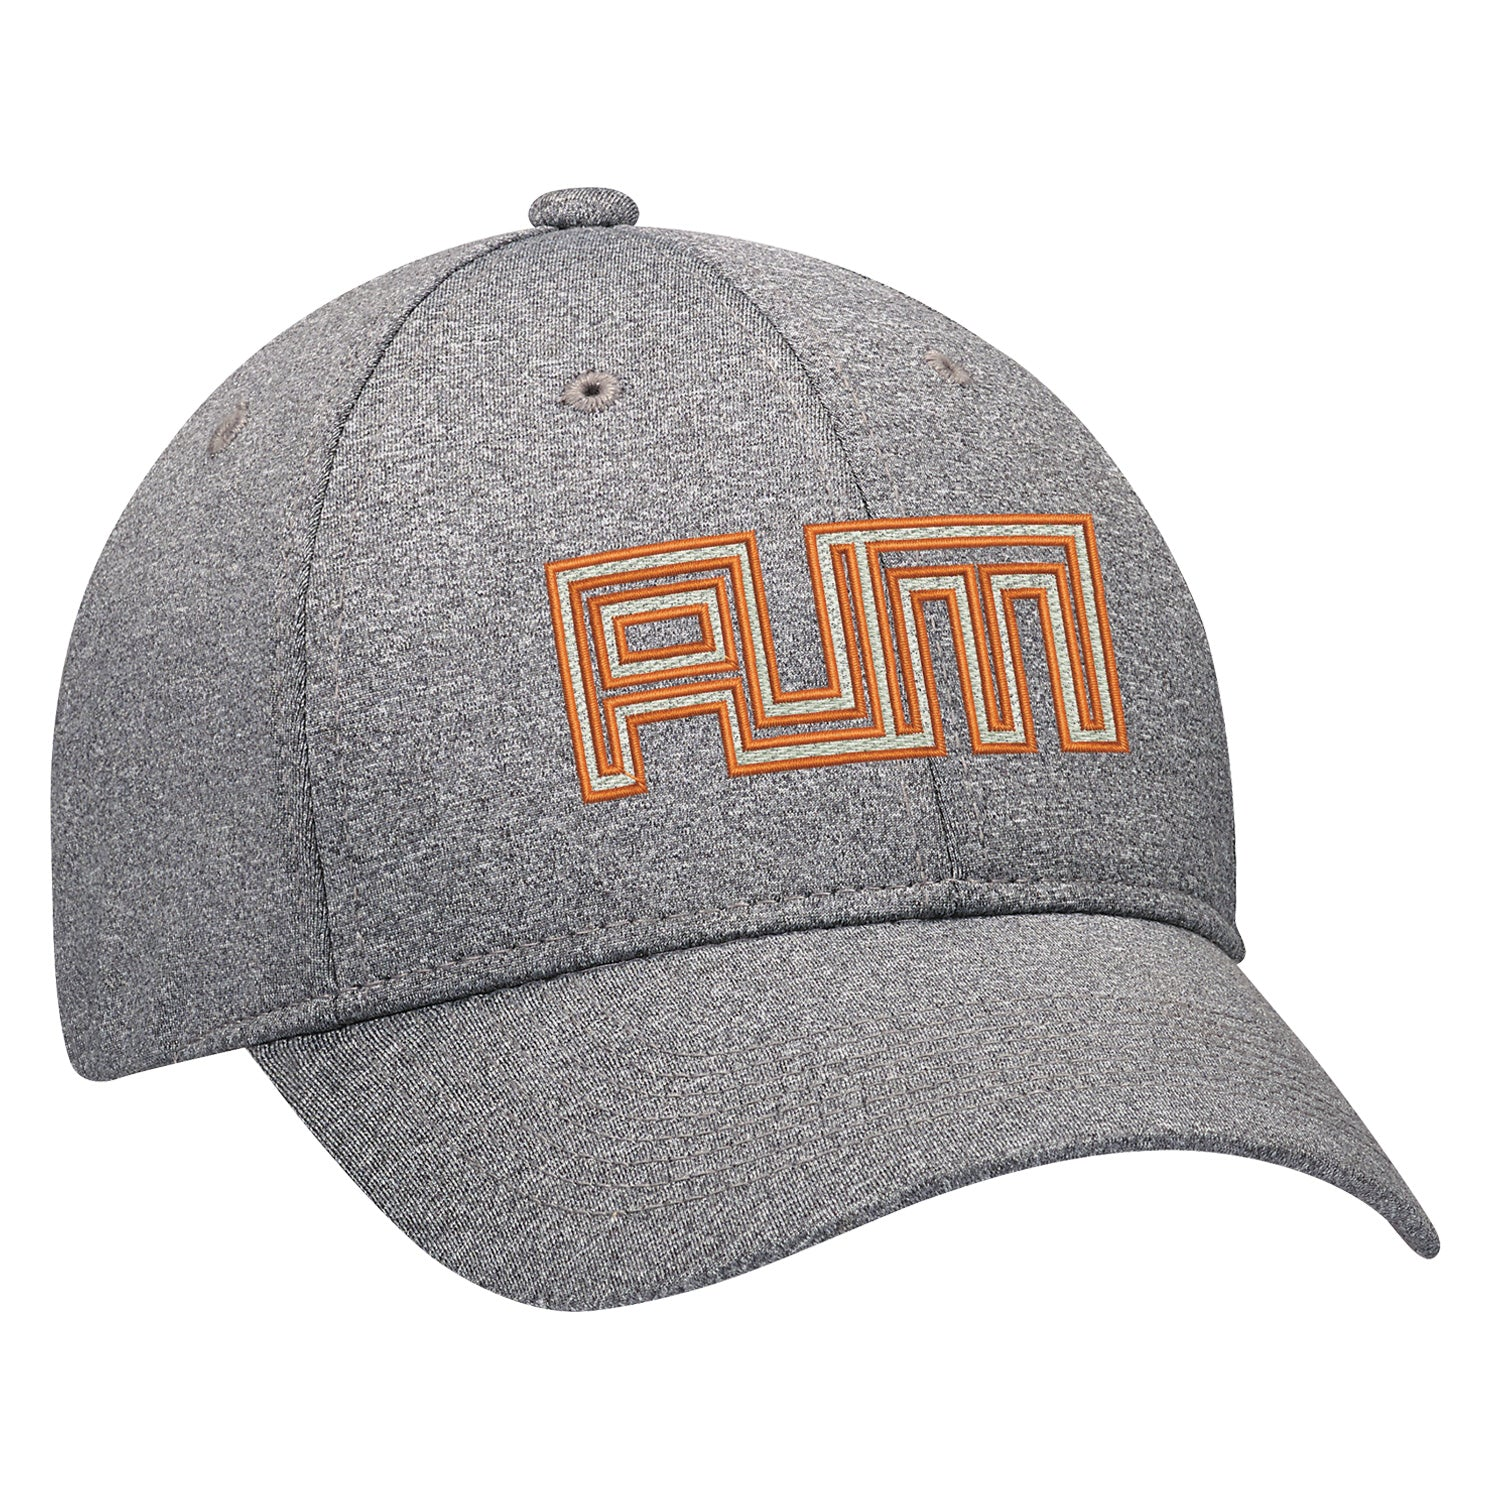 AJM POLYESTER HEATHER ADJUSTABLE HAT